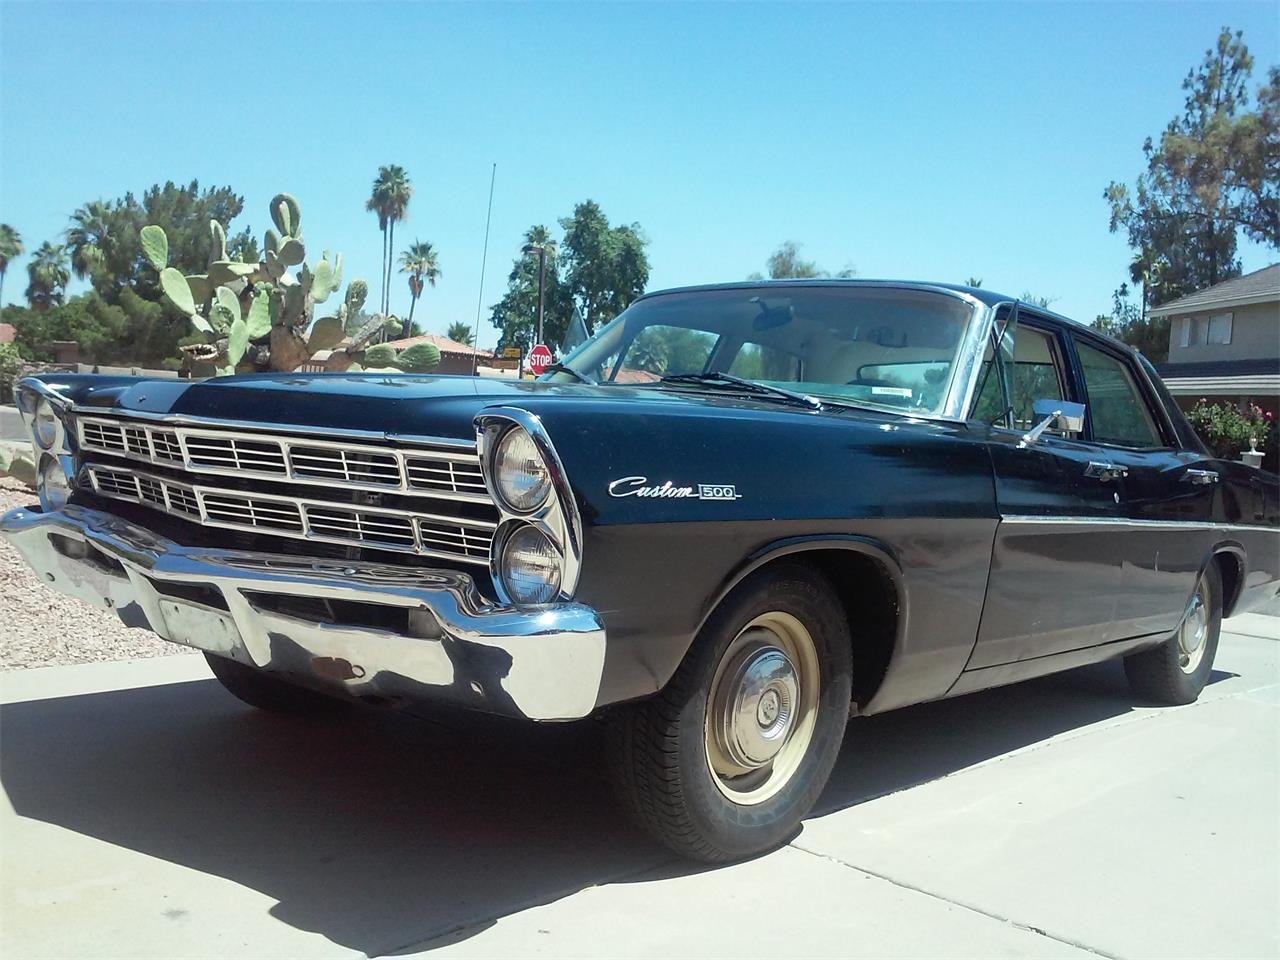 Large picture of 67 galaxie 500 izyo